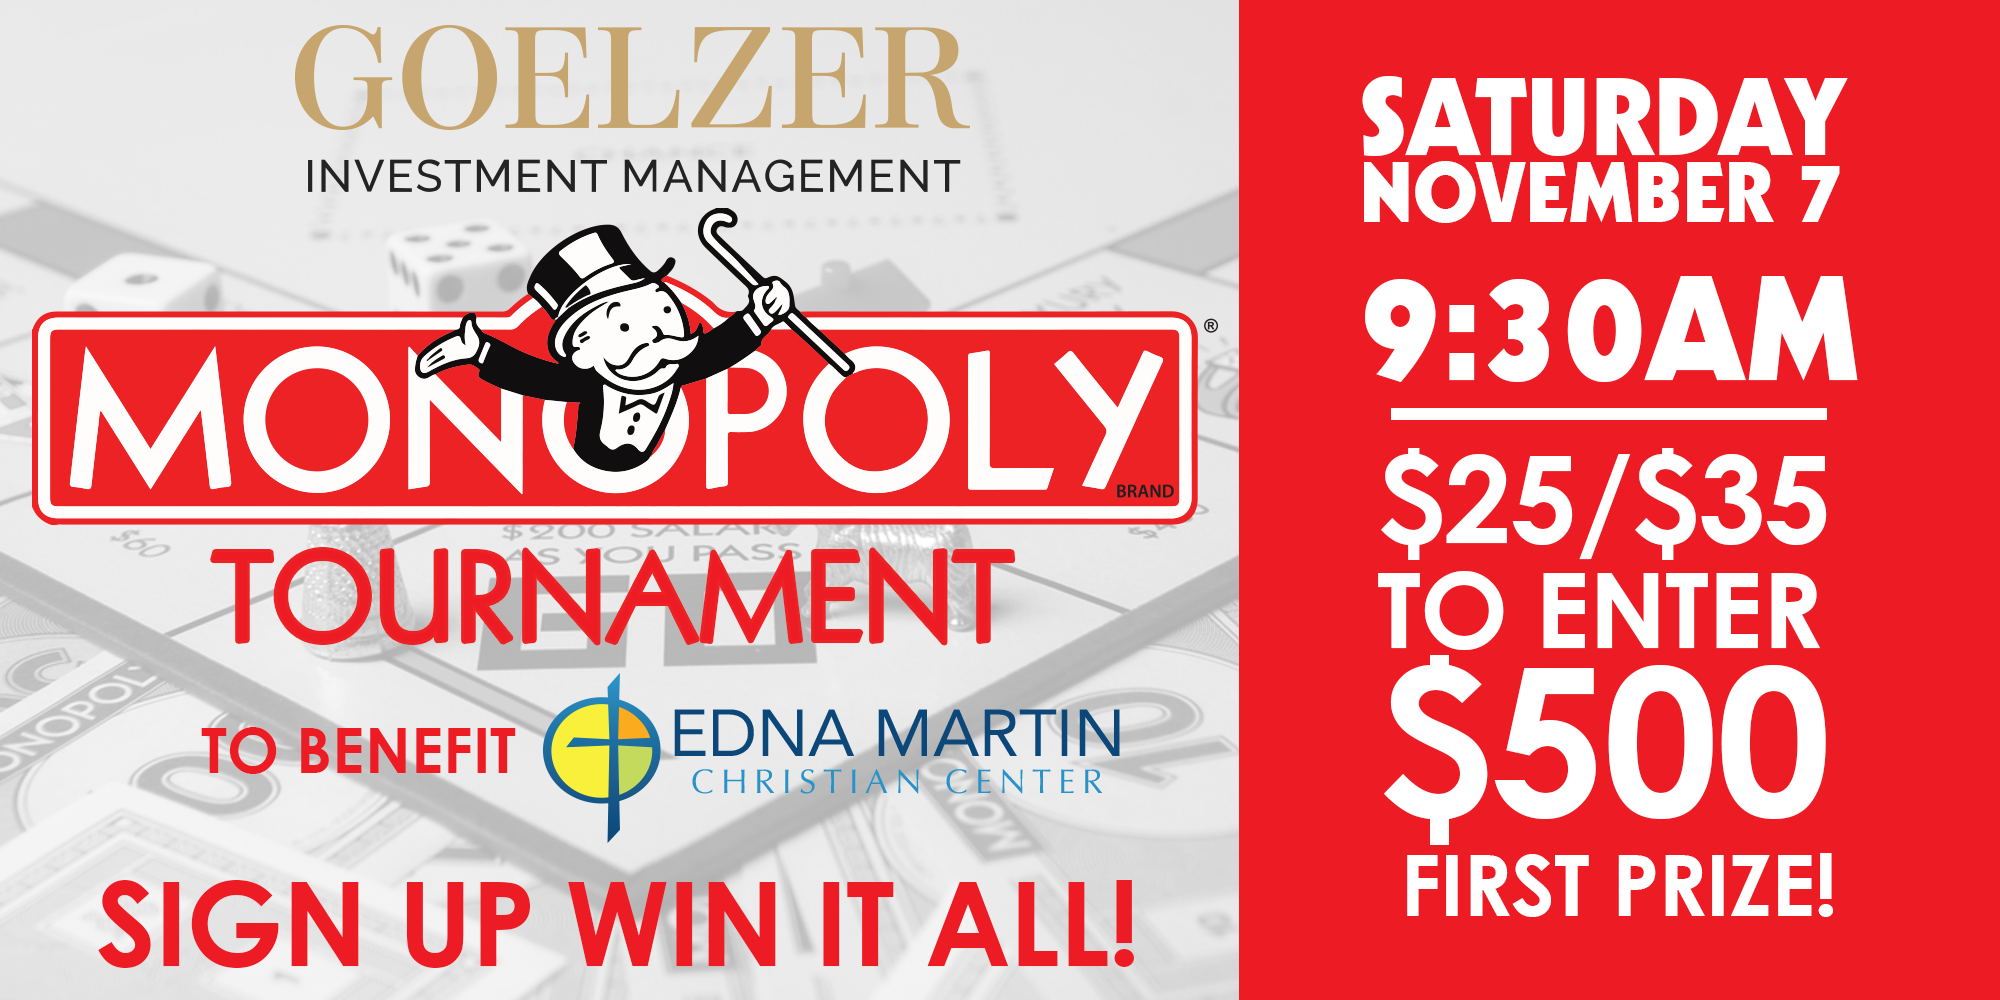 The Goelzer Investment Management MONOPOLY Tournament to benefit the Edna Martin Christian Center